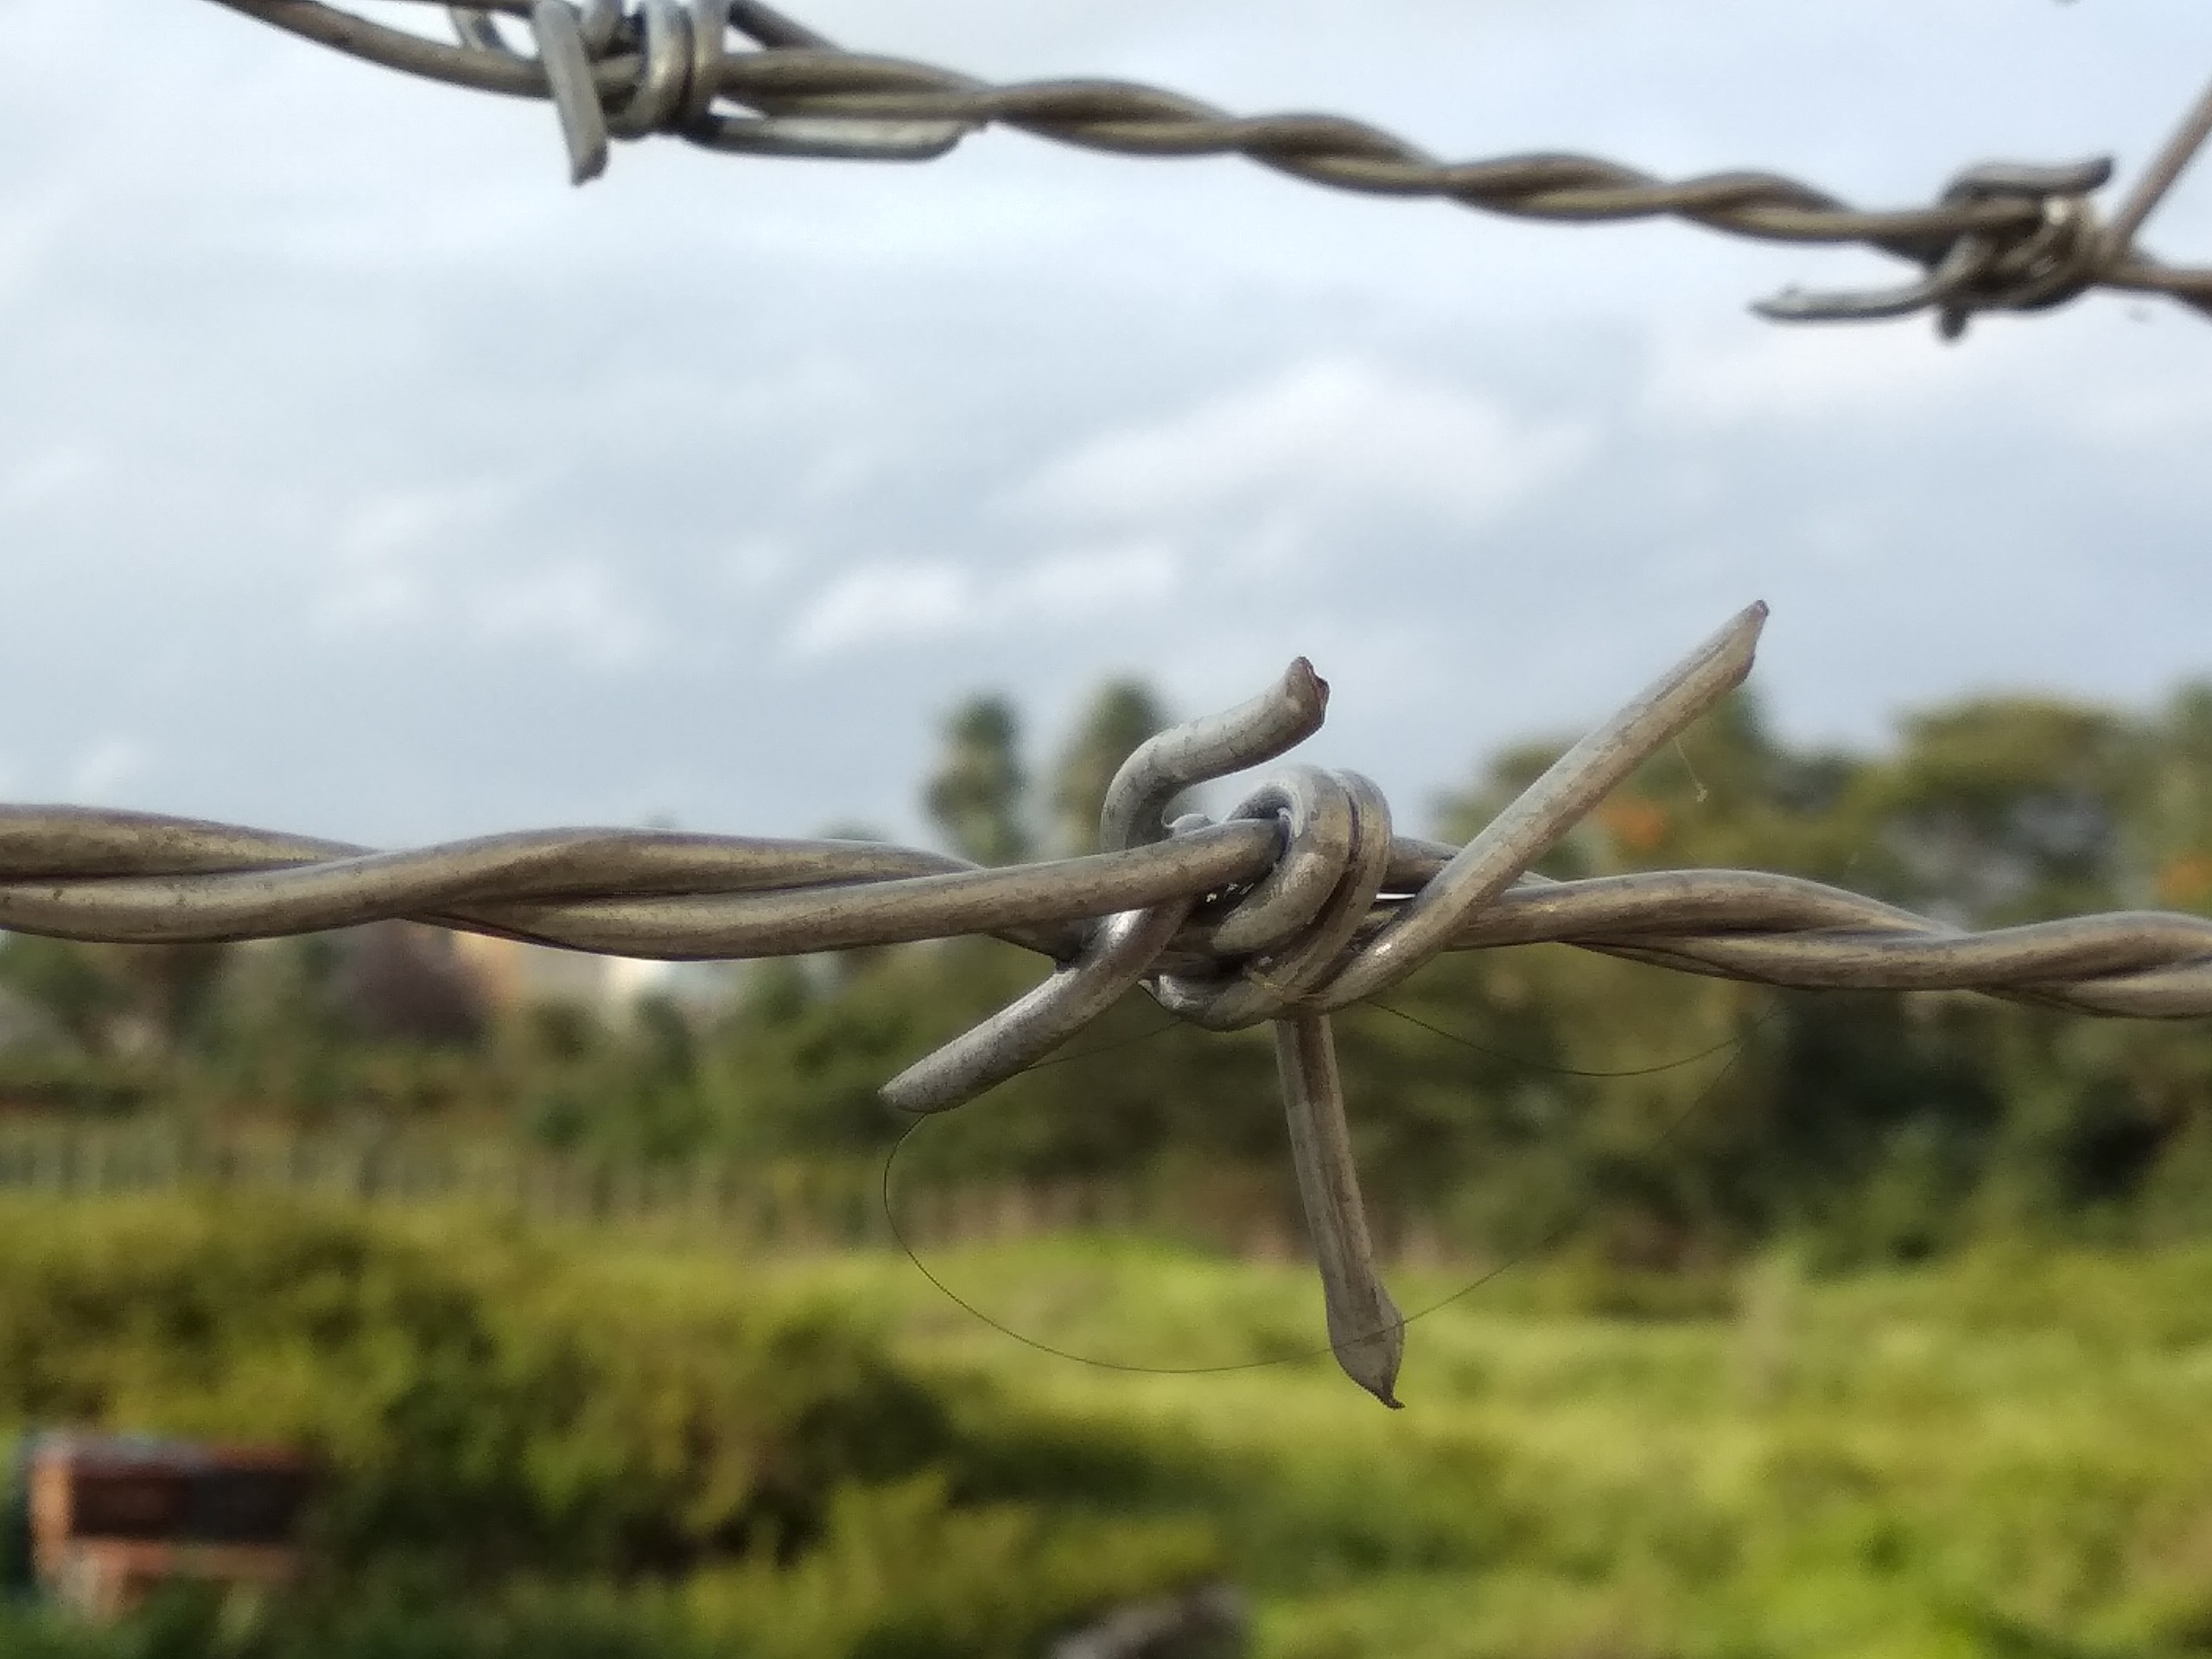 Barbed wires in a jungle